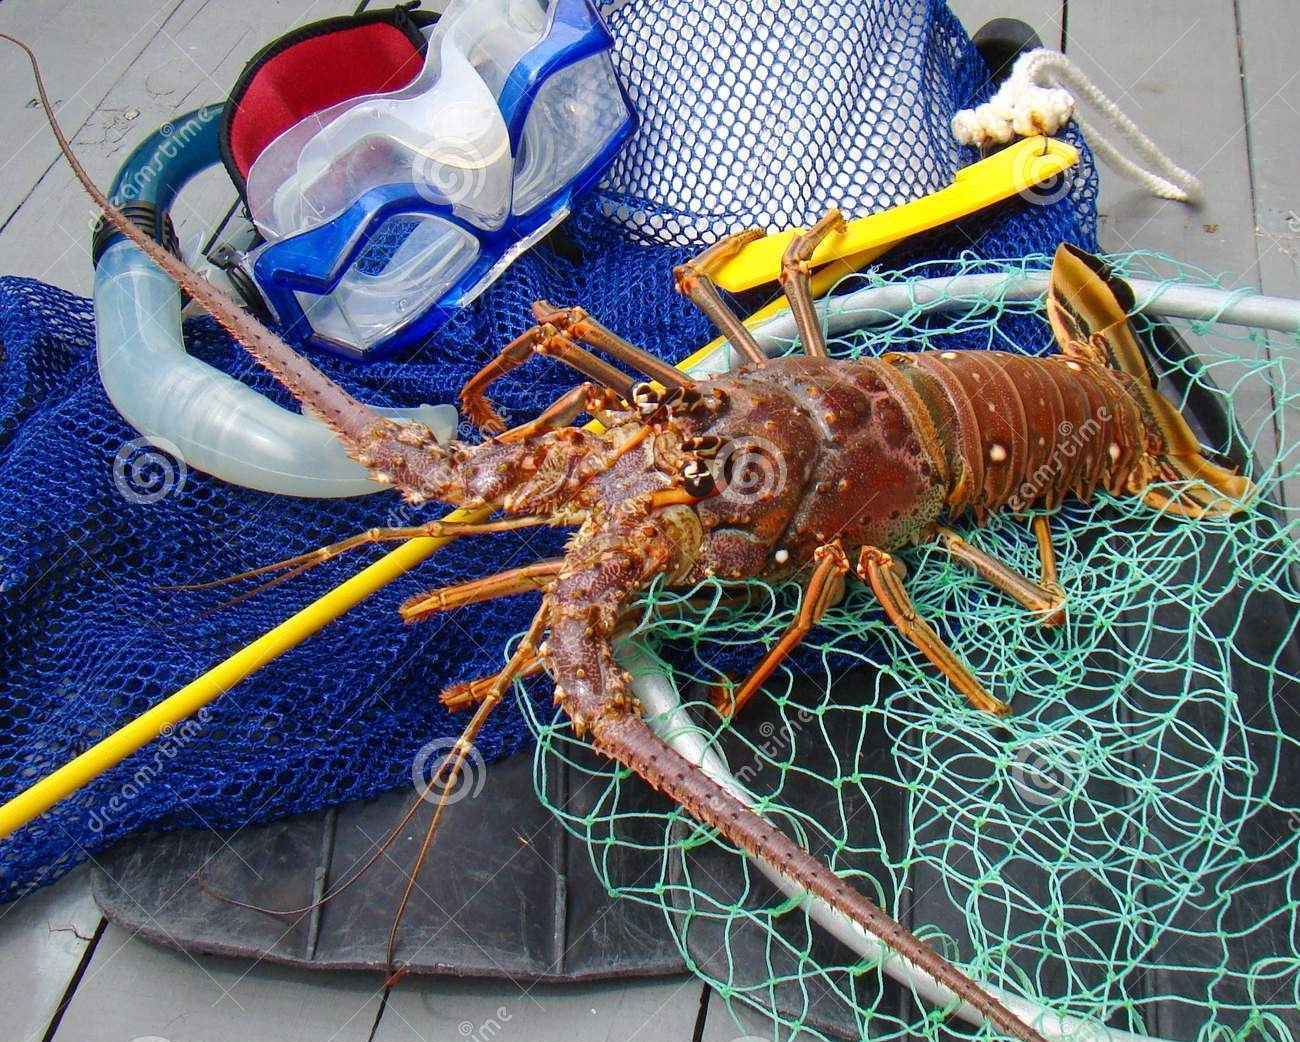 Florida Spiny Lobster Season and Dive Gear